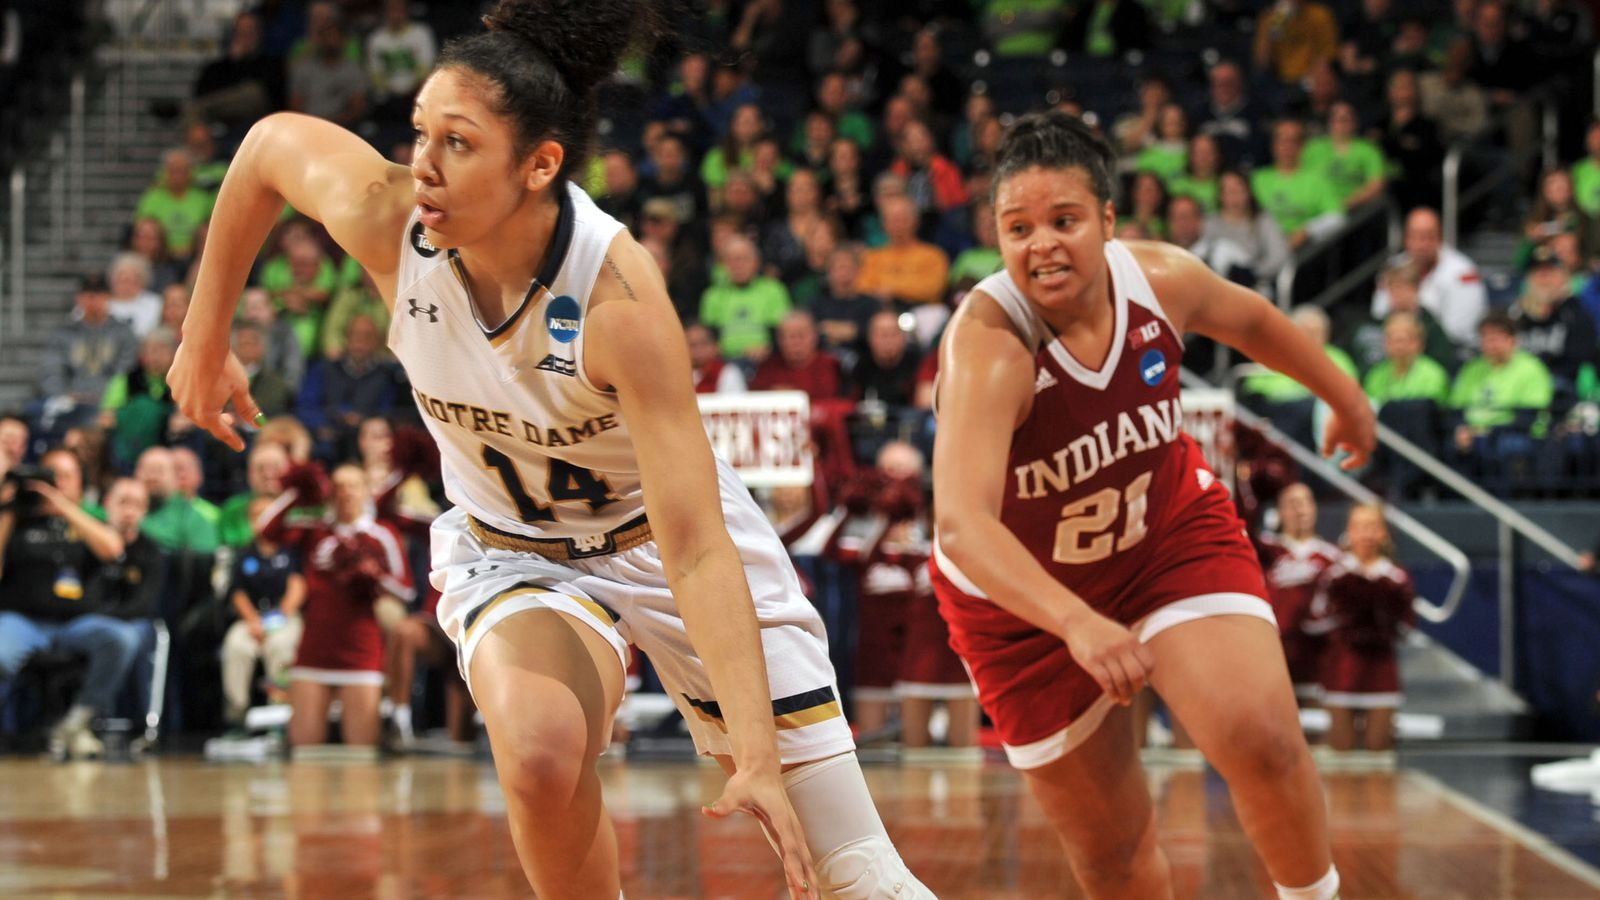 Notre Dame Women Advance To Basketball Sweet 16: Notre Dame Women's Basketball Gets By Indiana, Advances To